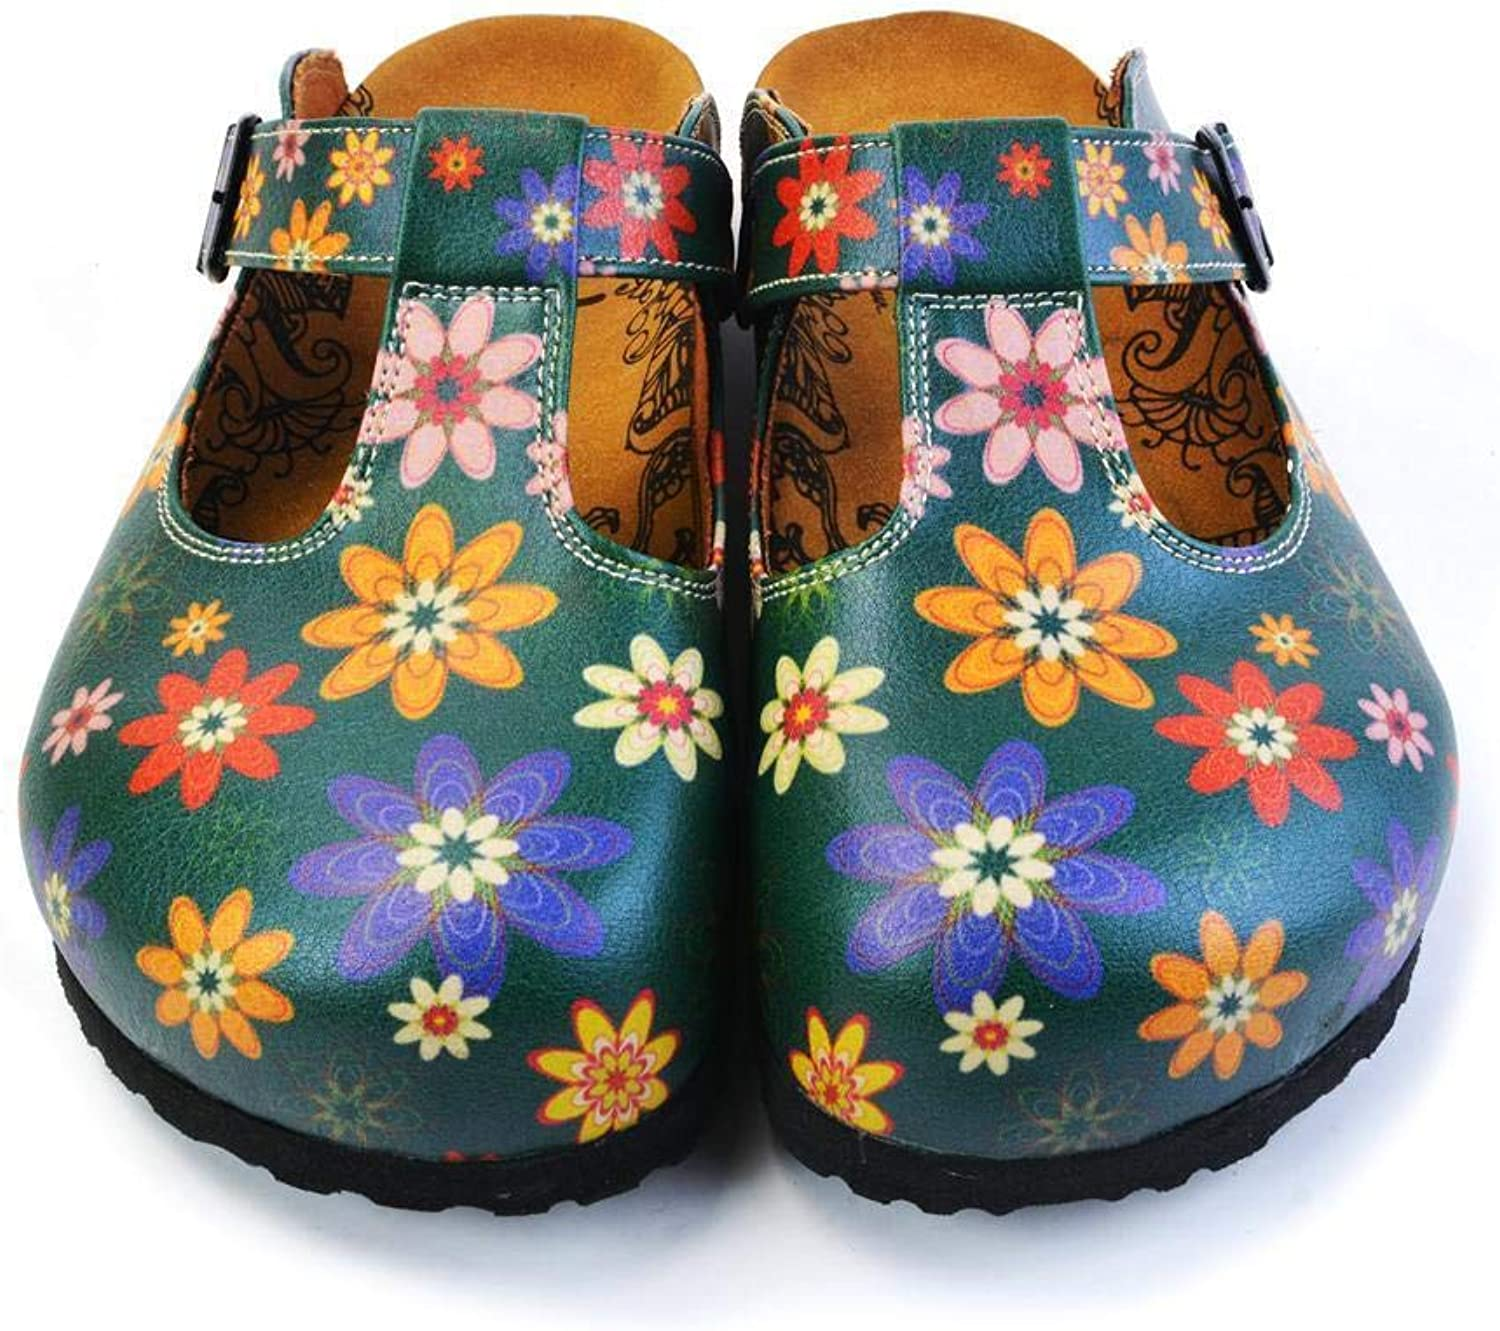 GOBY Women's shoes ''Green Floral Clogs'' Sandals 'CAL1504'